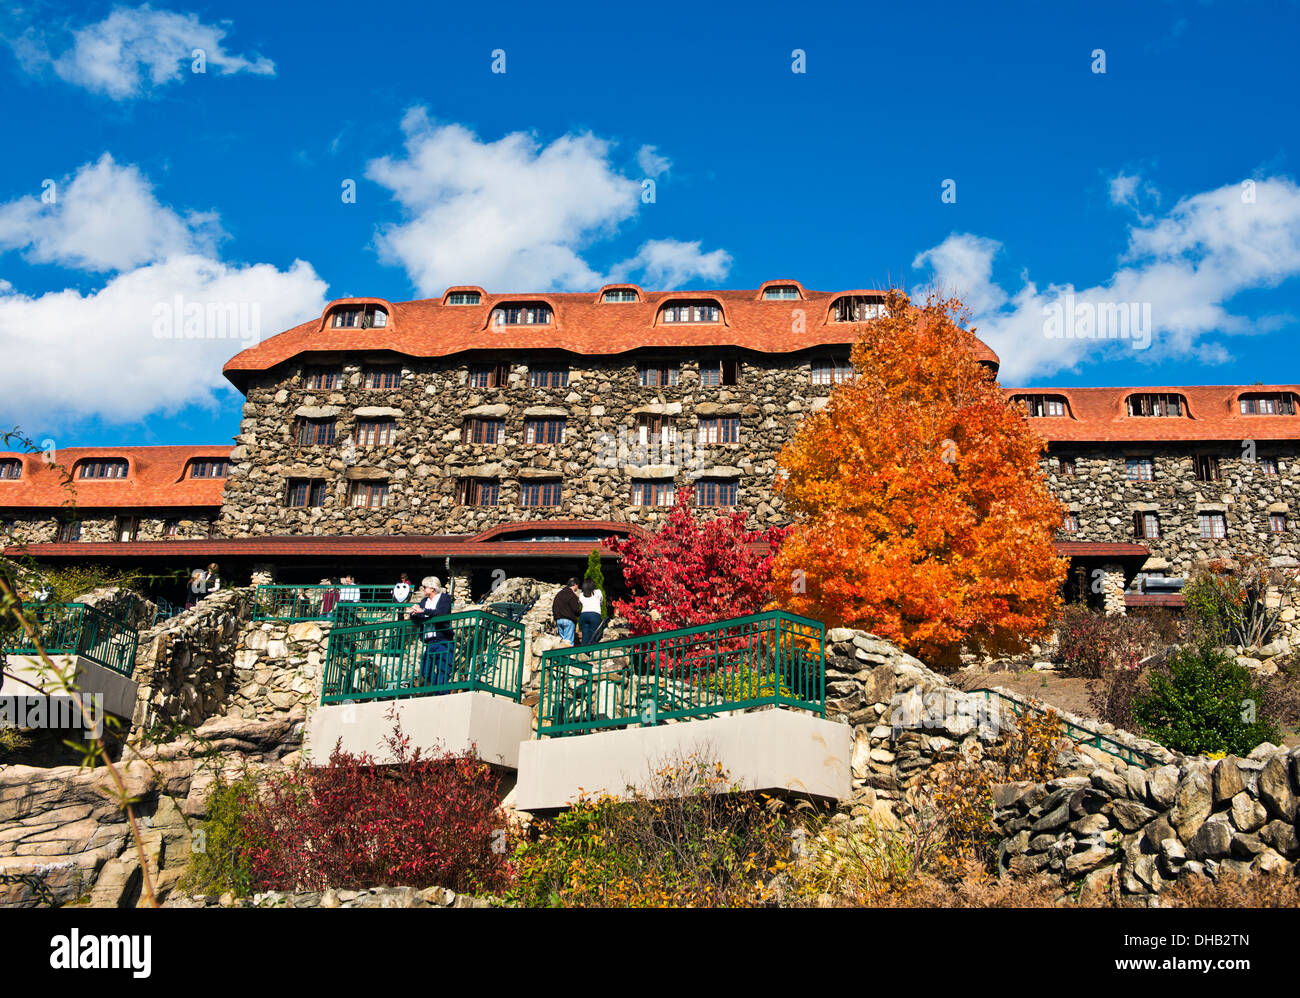 Autumn colors at the Grove Park Inn,  Asheville North Carolina - Stock Image